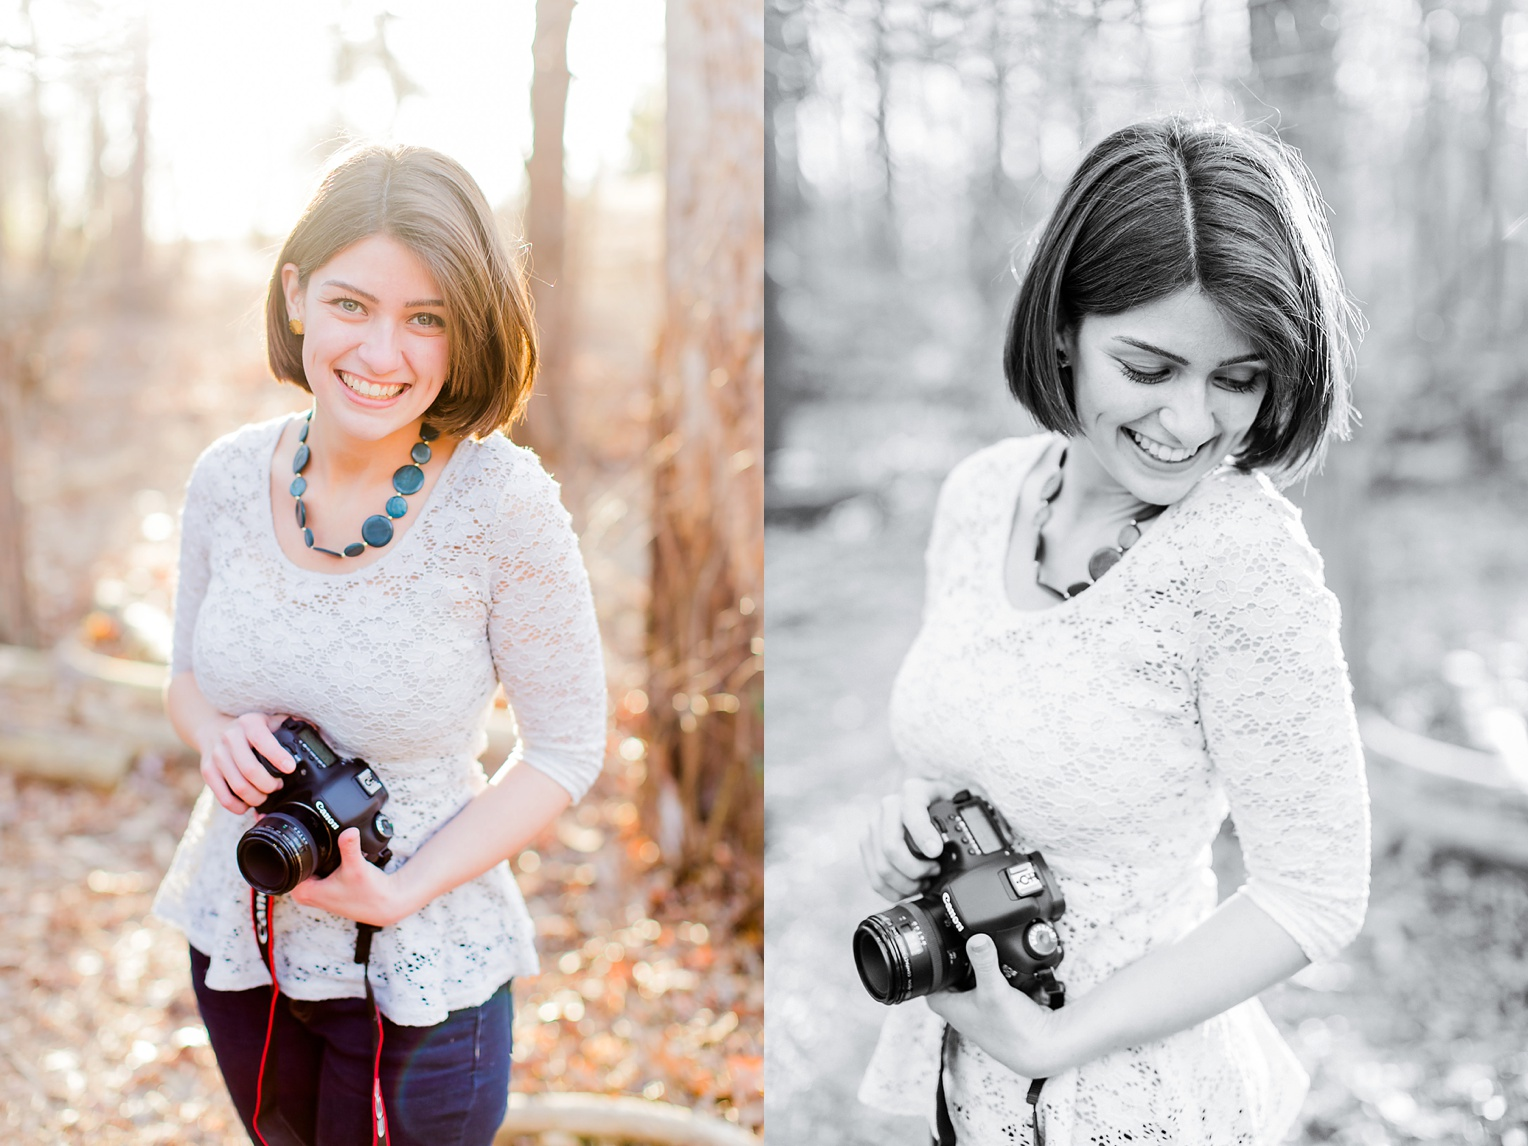 Virginia Photography Mentoring Business Consulting